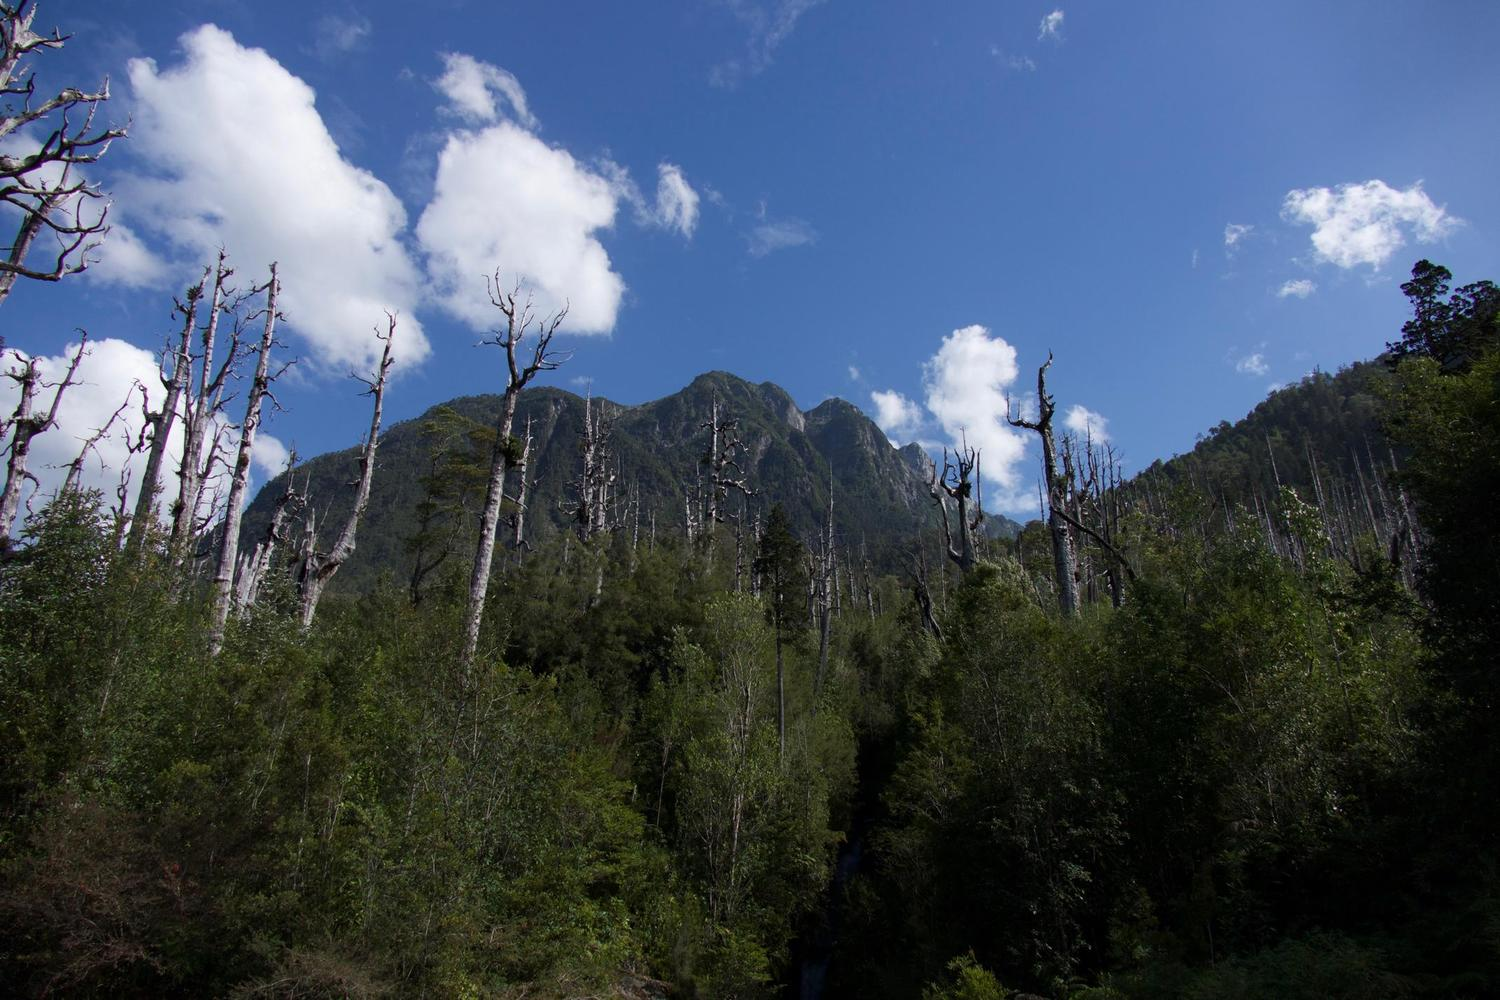 The Alerce forests of Pumalín Park